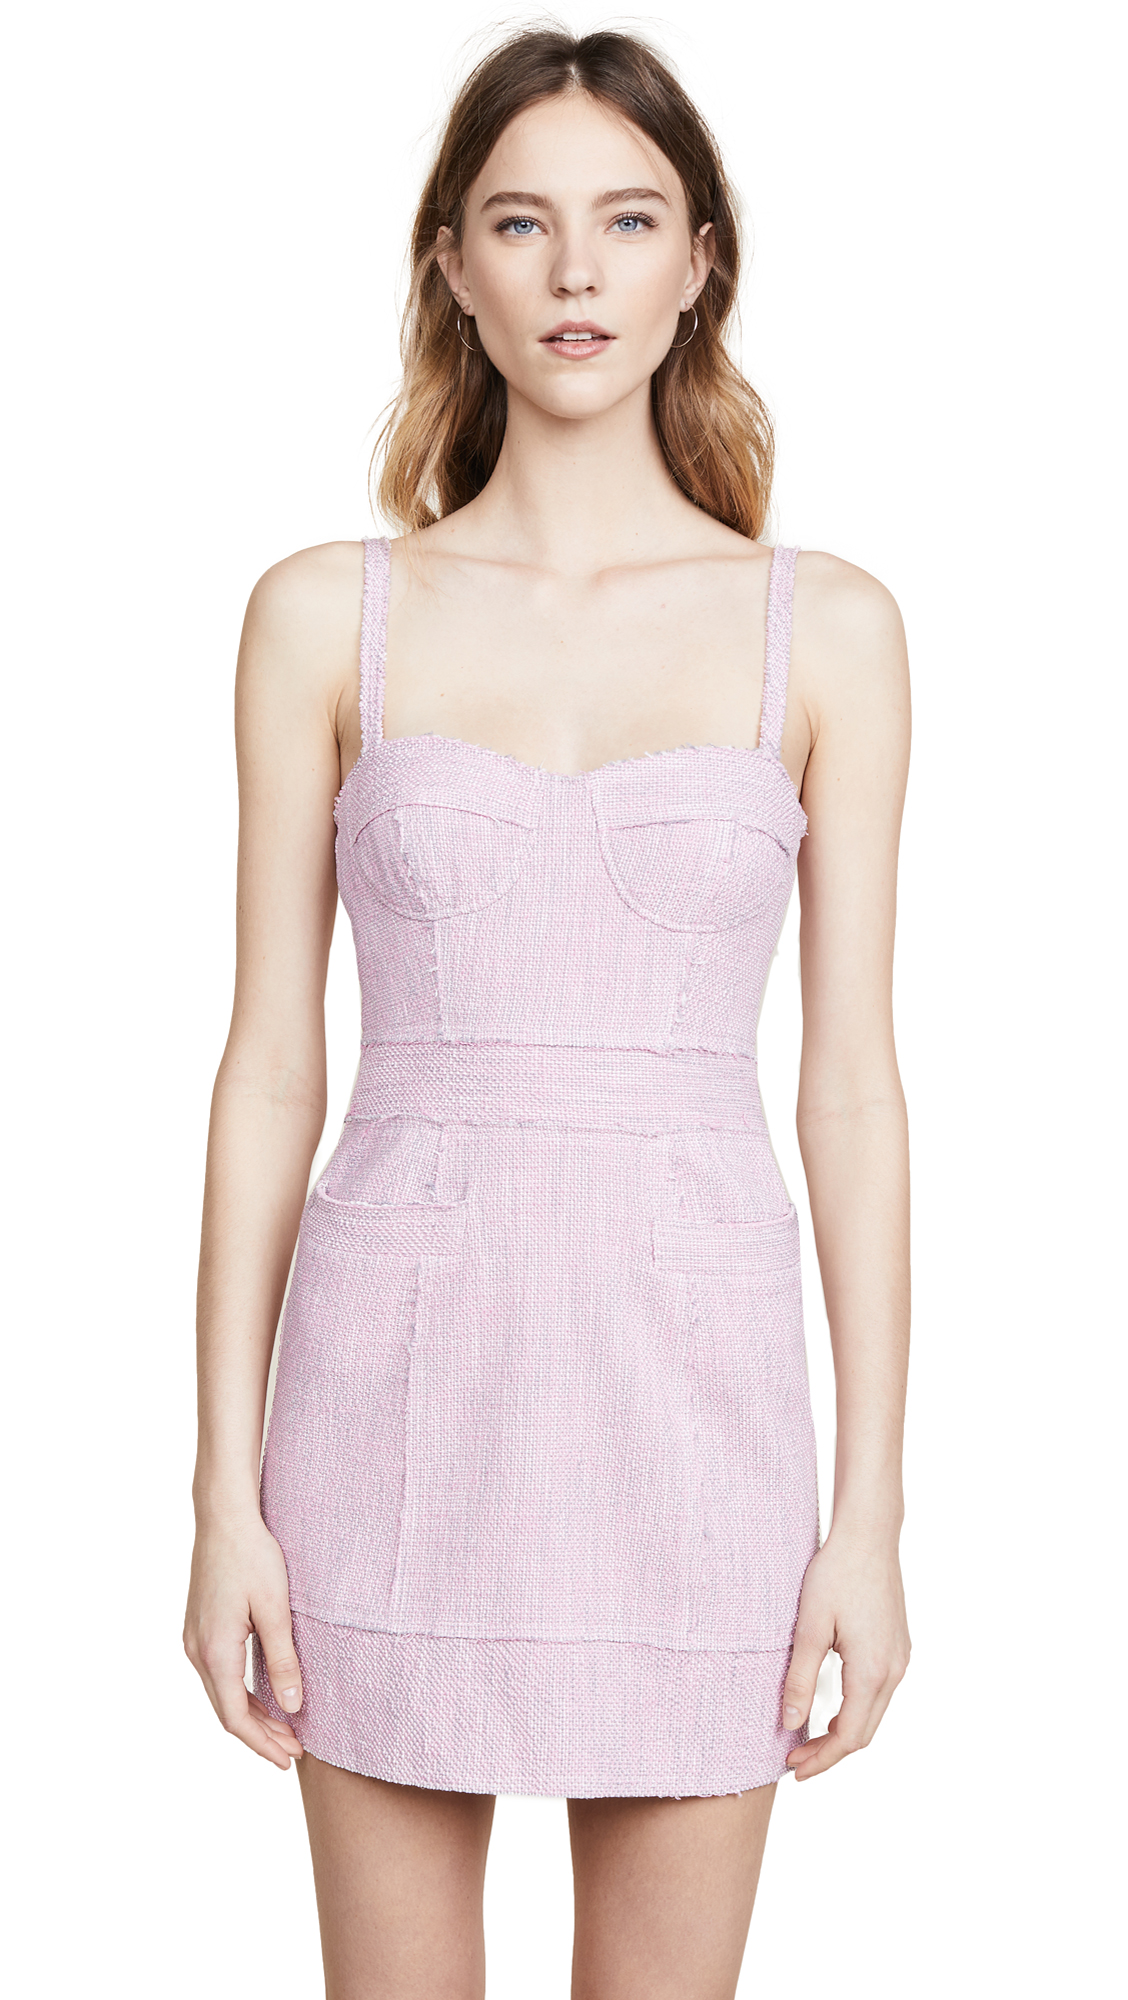 Milly Tweed Bustier Dress - Pink